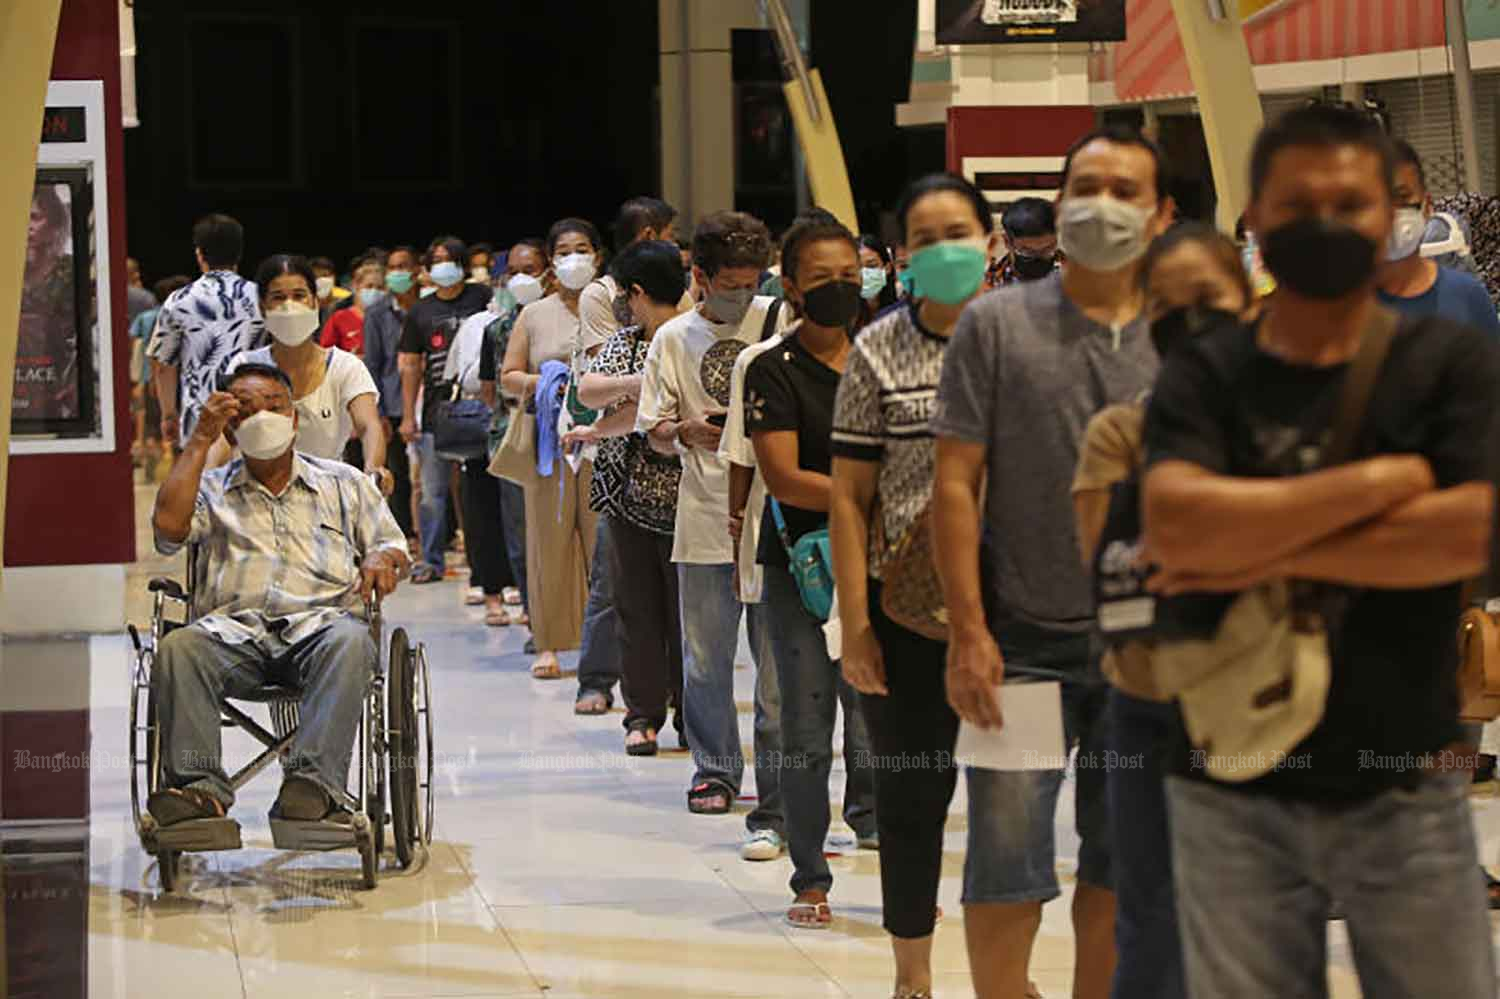 People stand in line for their first dose of Covid-19 vaccine at The Mall Bangkapi shopping centre in Bangkok on Wednesday. The AstraZeneca vaccine was on offer, with walk-ins accepted in the case of pregnant women. (Photo: Varuth Hirunyatheb)